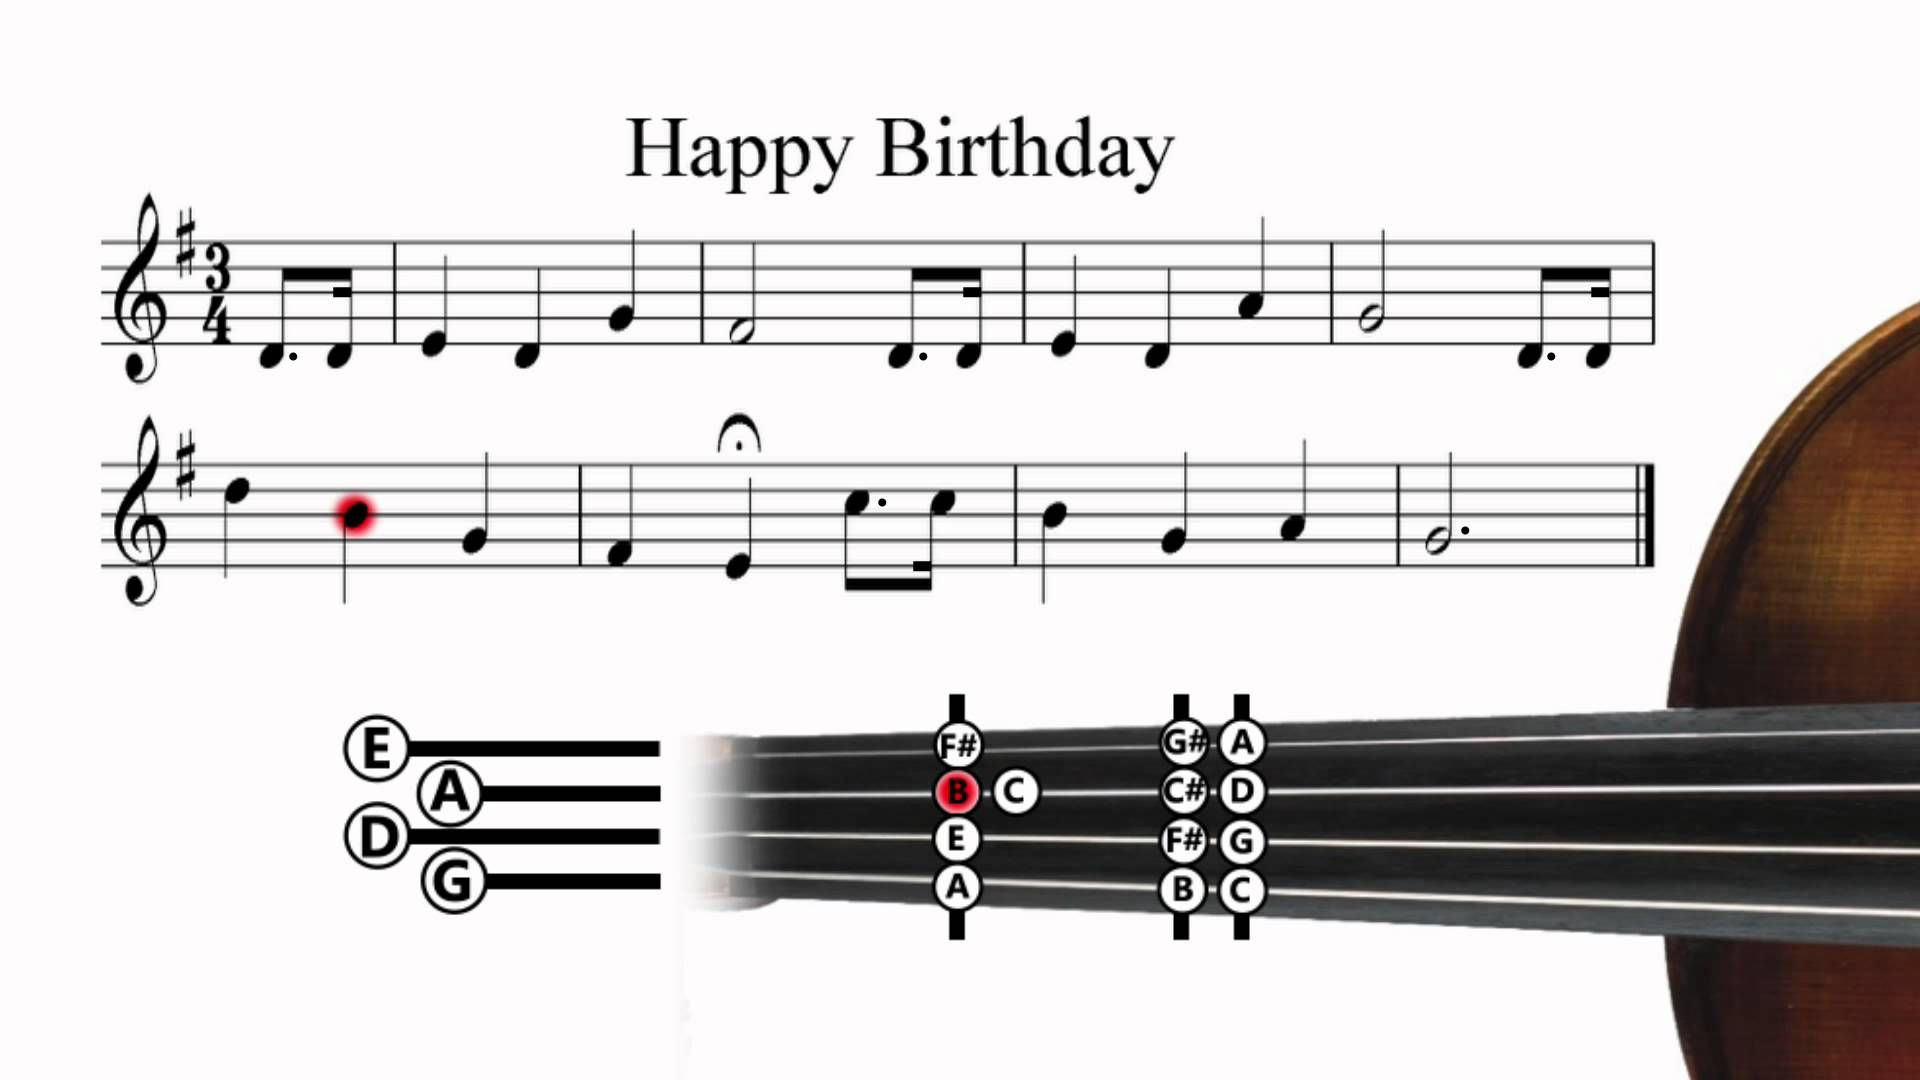 Happy Birthday! maxresdefault.jpg Violin tutorial